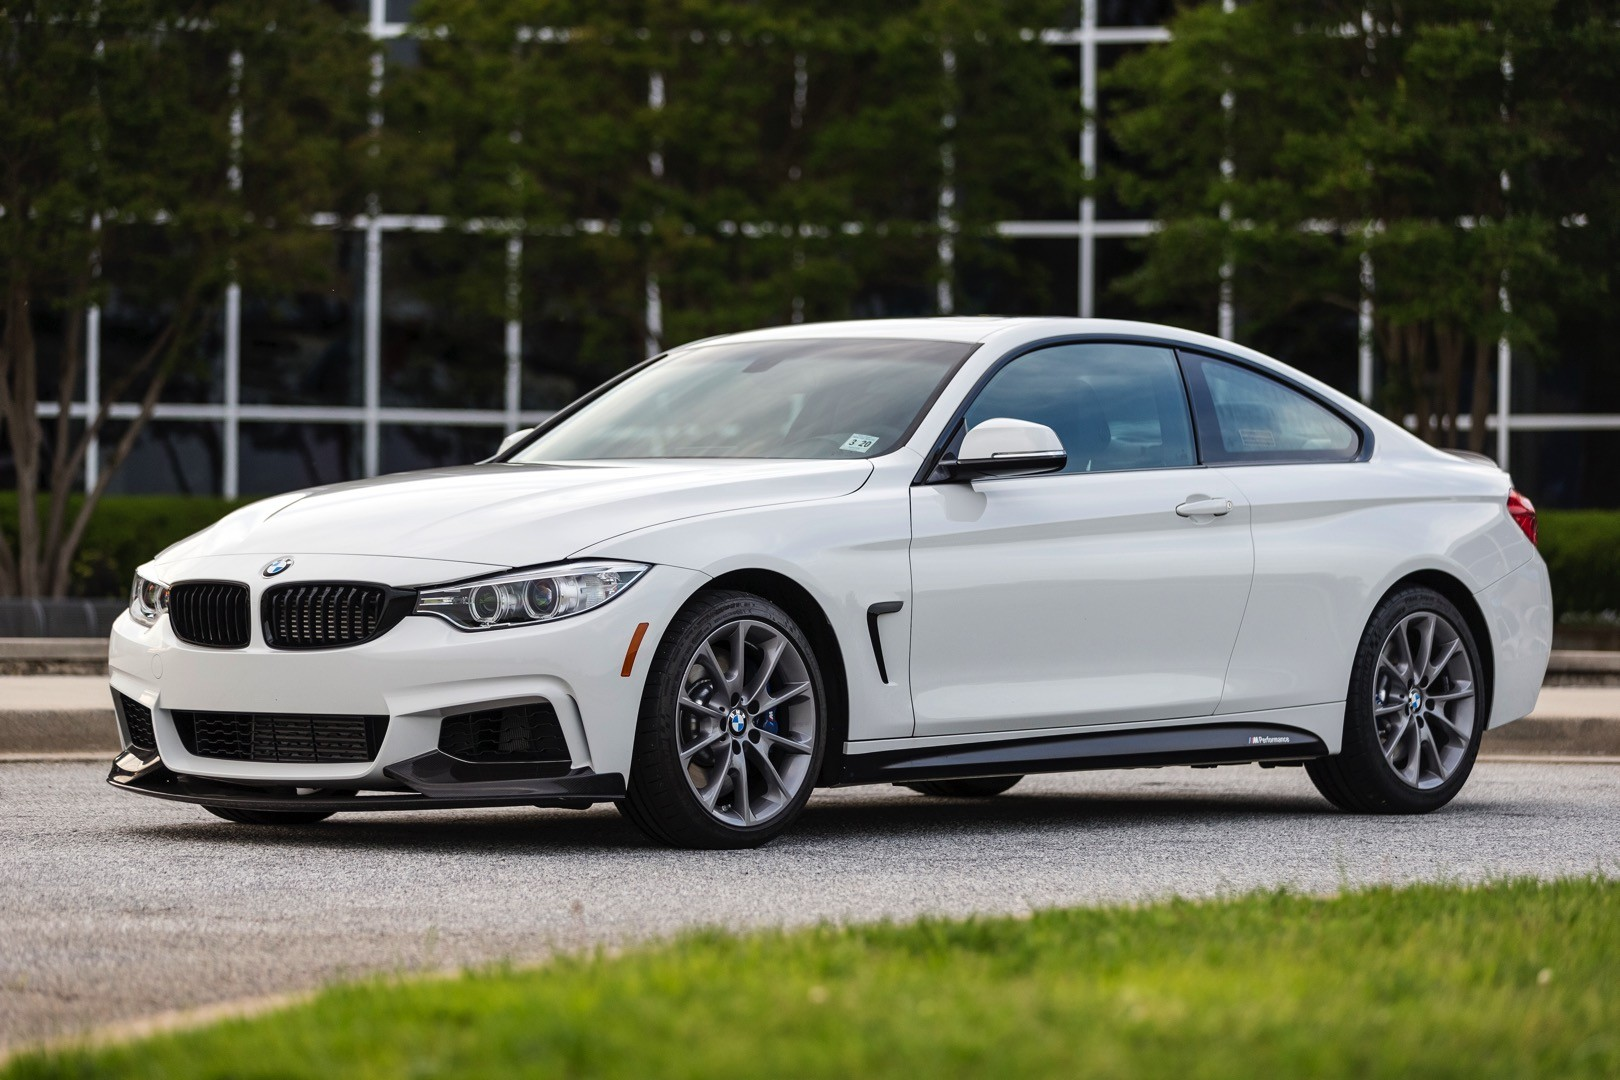 bmw has unveiled a - photo #8